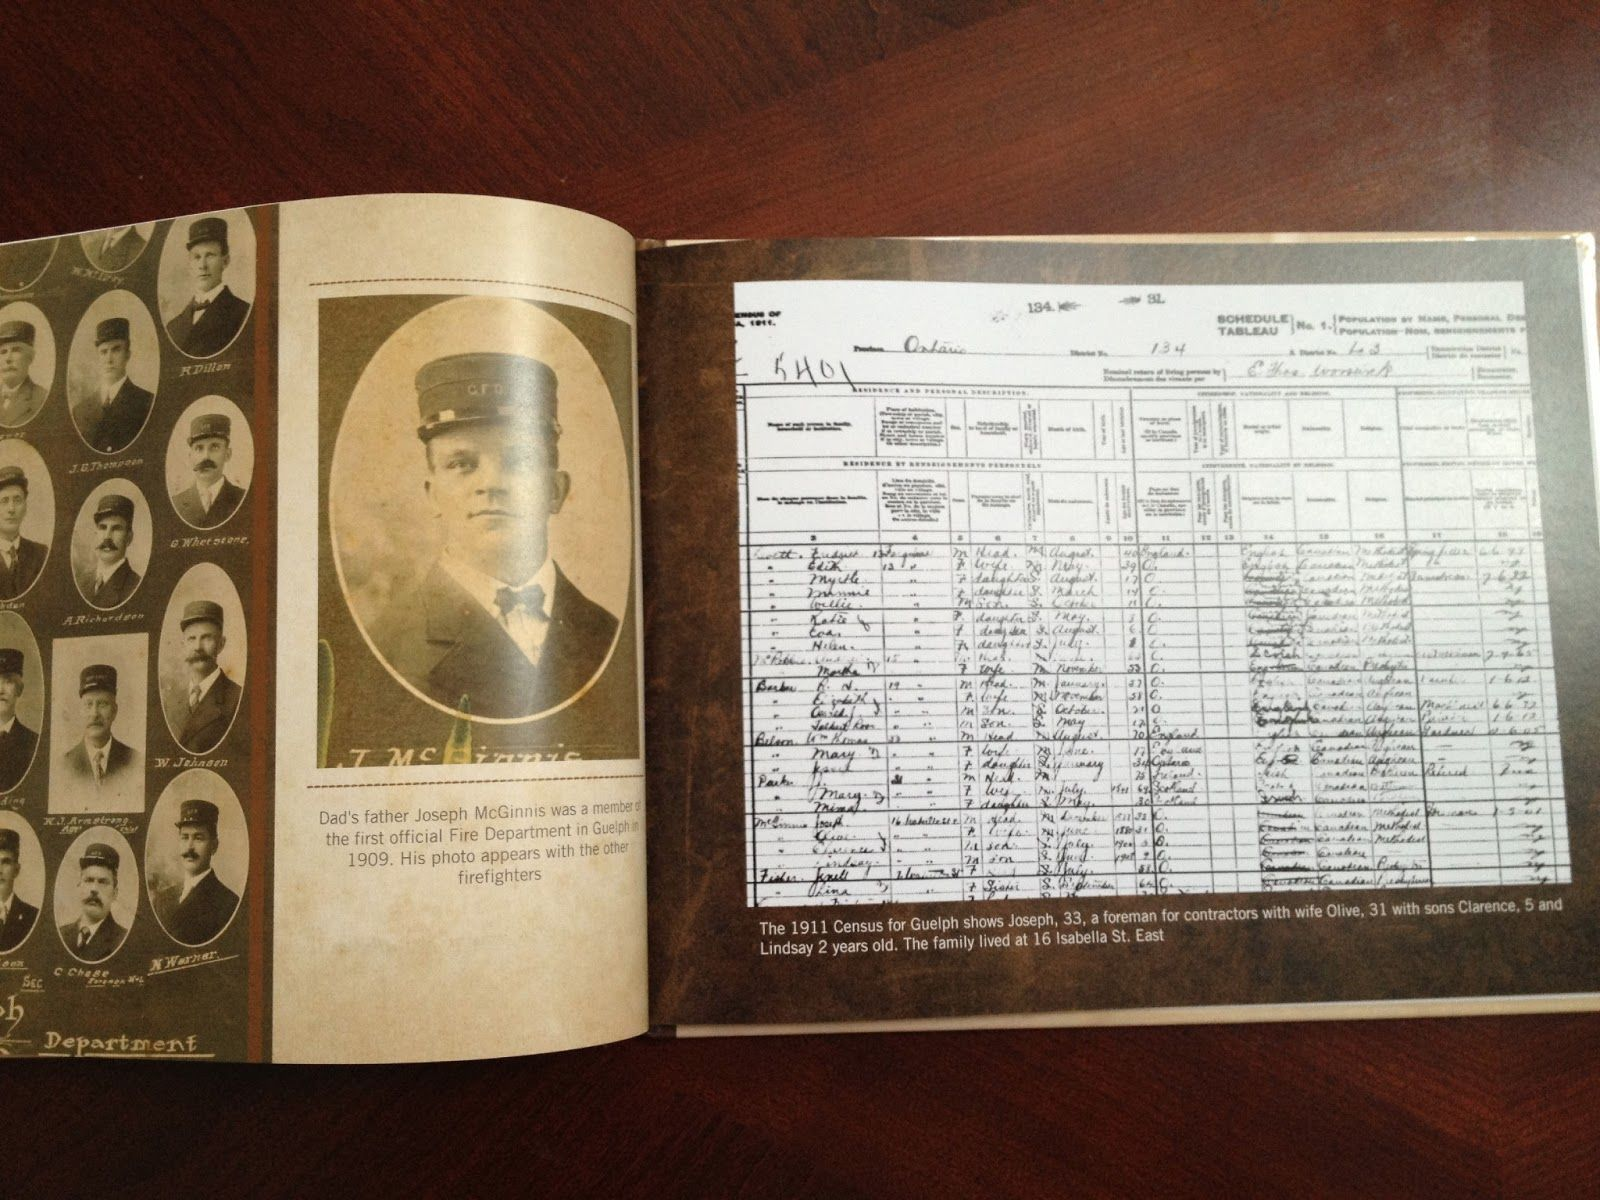 000 Staggering Family History Book Template Image  Sample Writing AFull